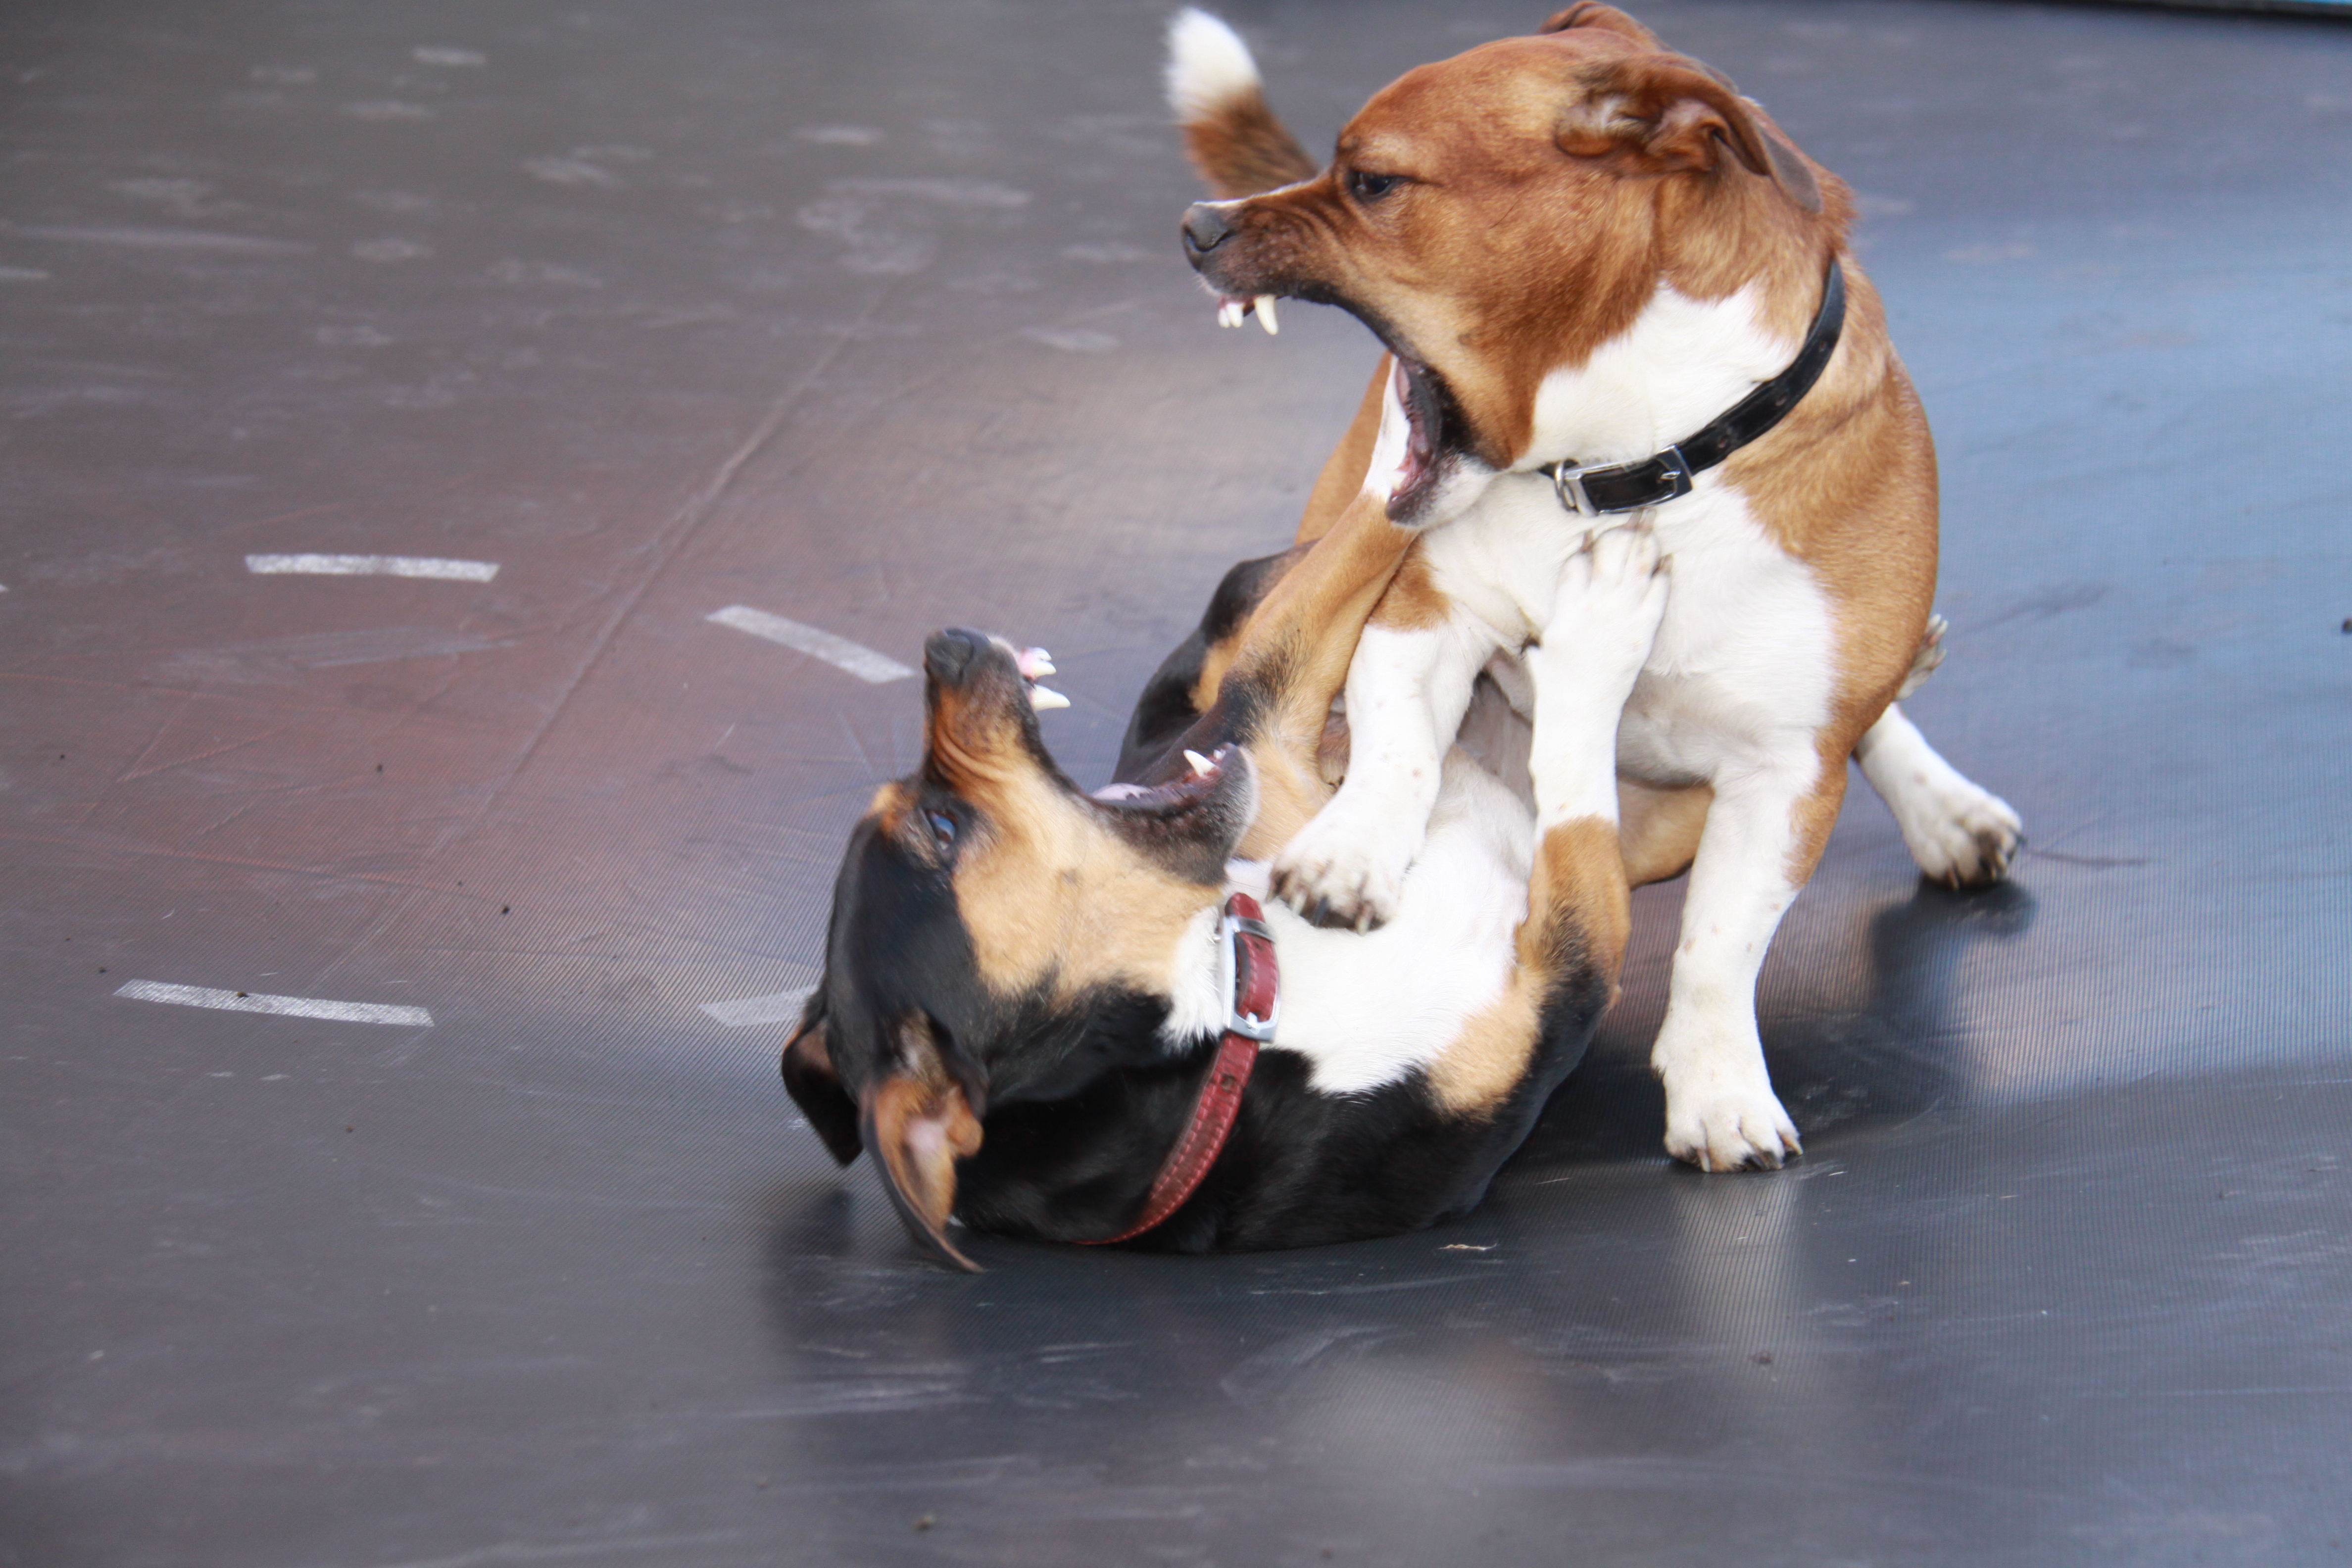 Dog Fights Videos Free Download